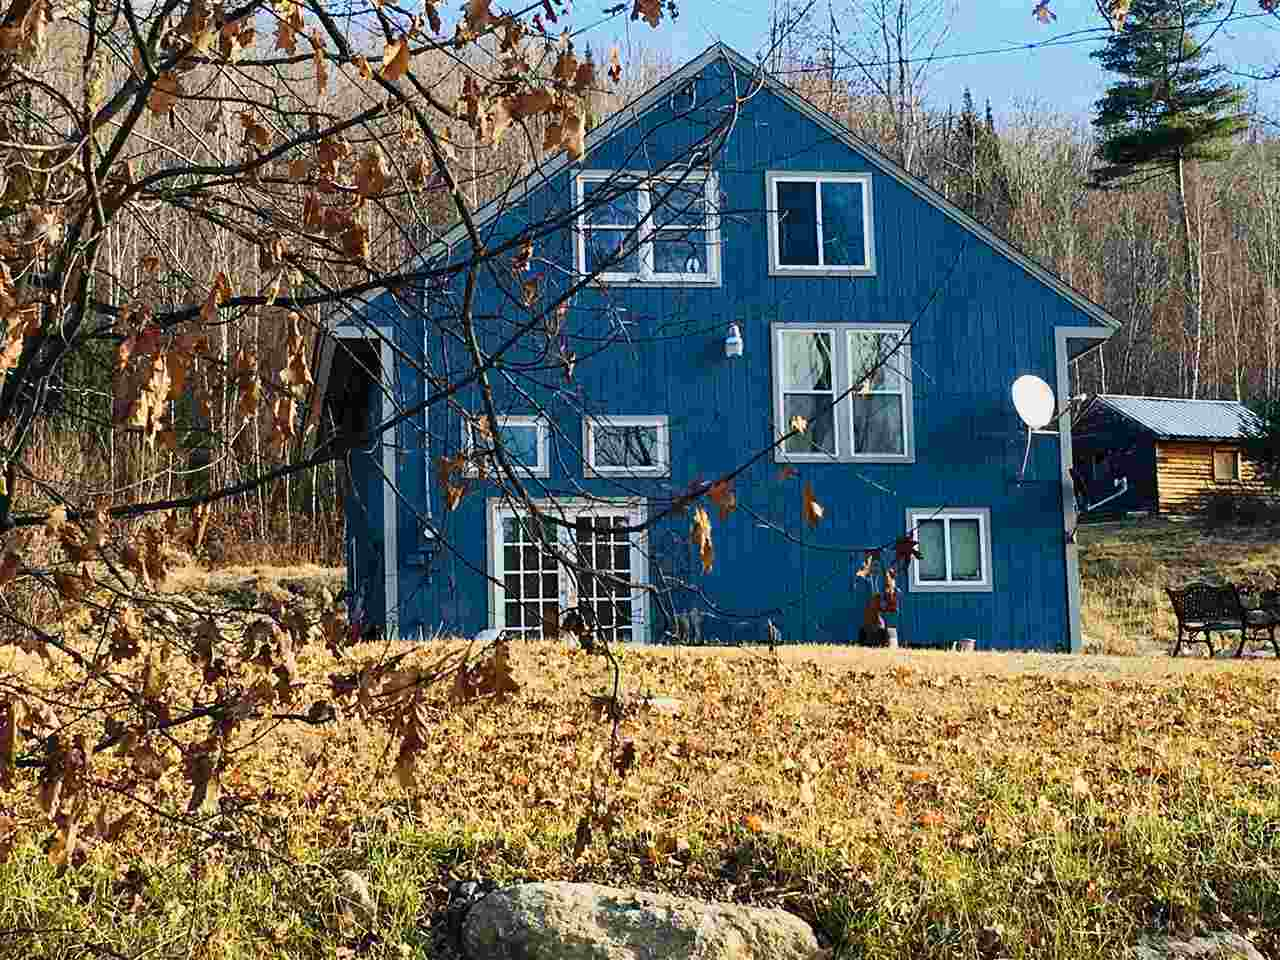 Croydon NH 03773 Home for sale $List Price is $169,900